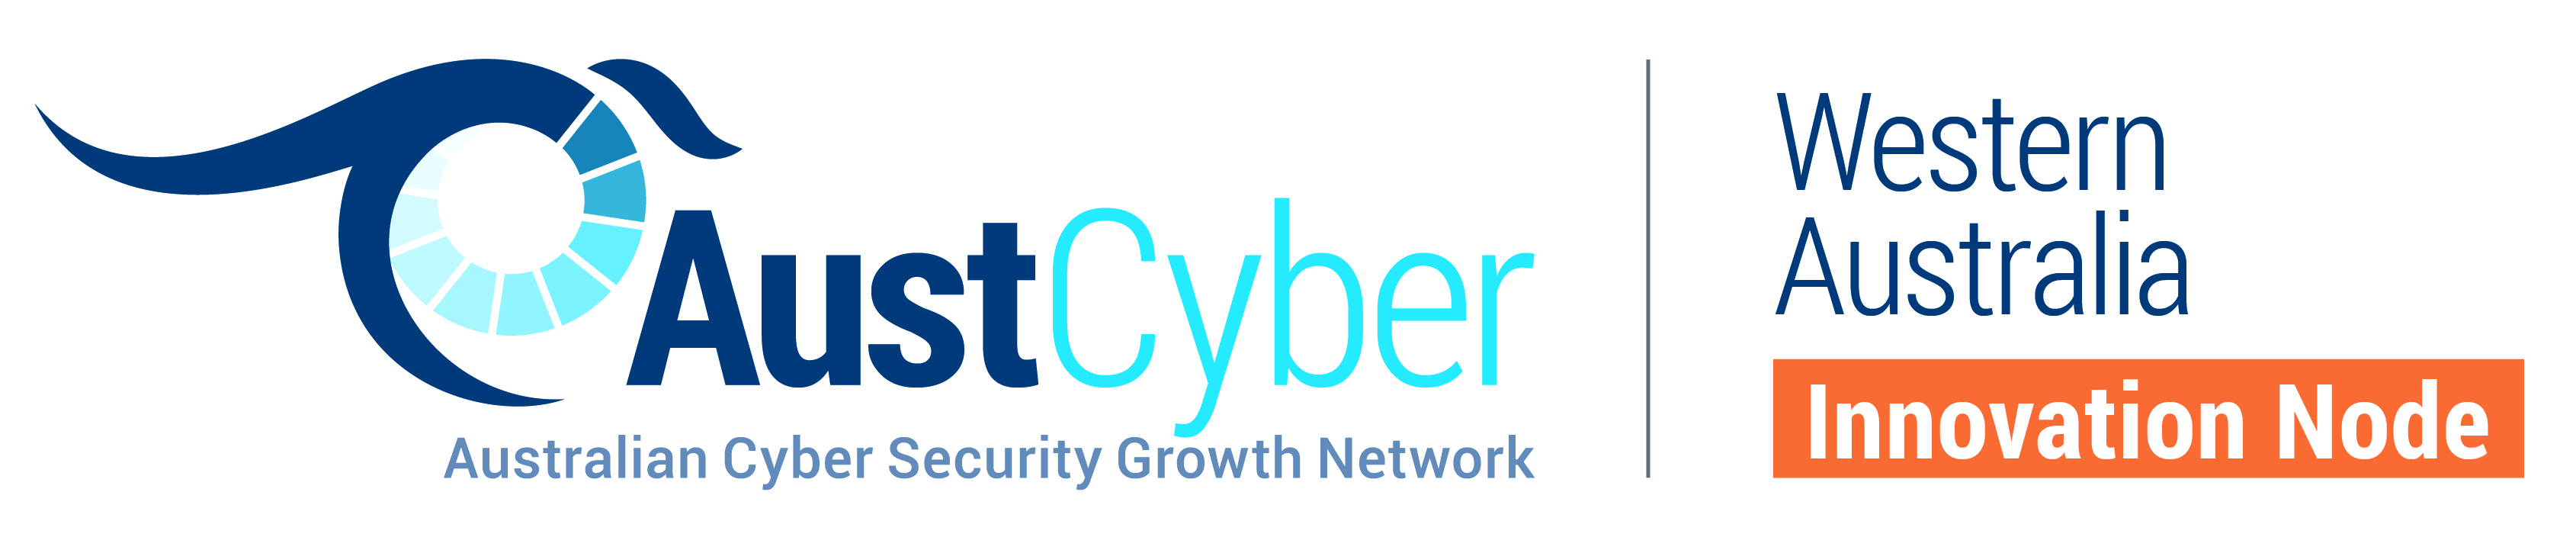 Australian Cyber Security Growth Network